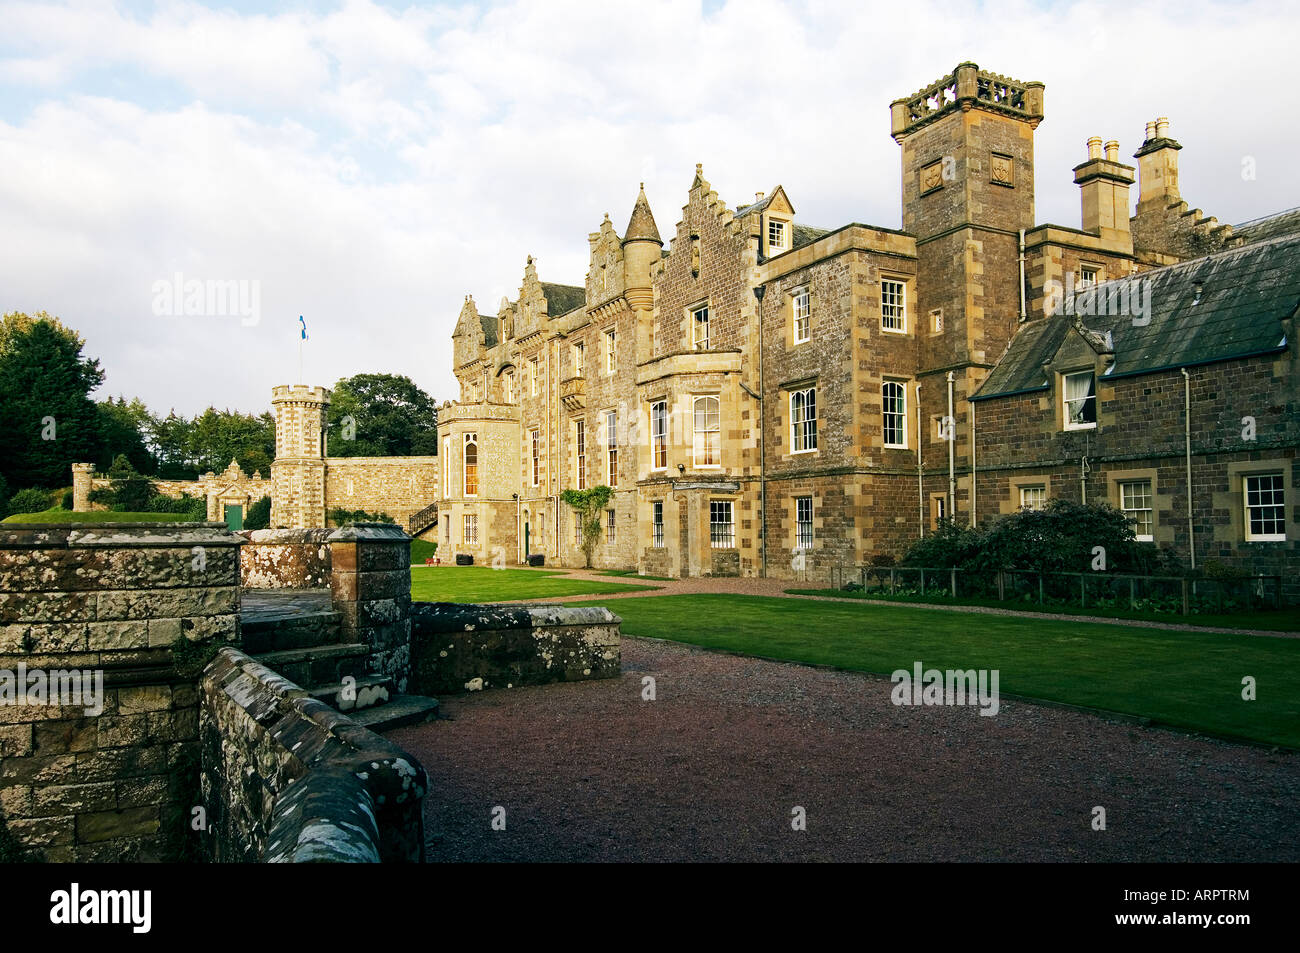 Abbotsford House, Victorian novelist Sir Walter Scott's home near Galashiels in the Borders region, Scotland - Stock Image